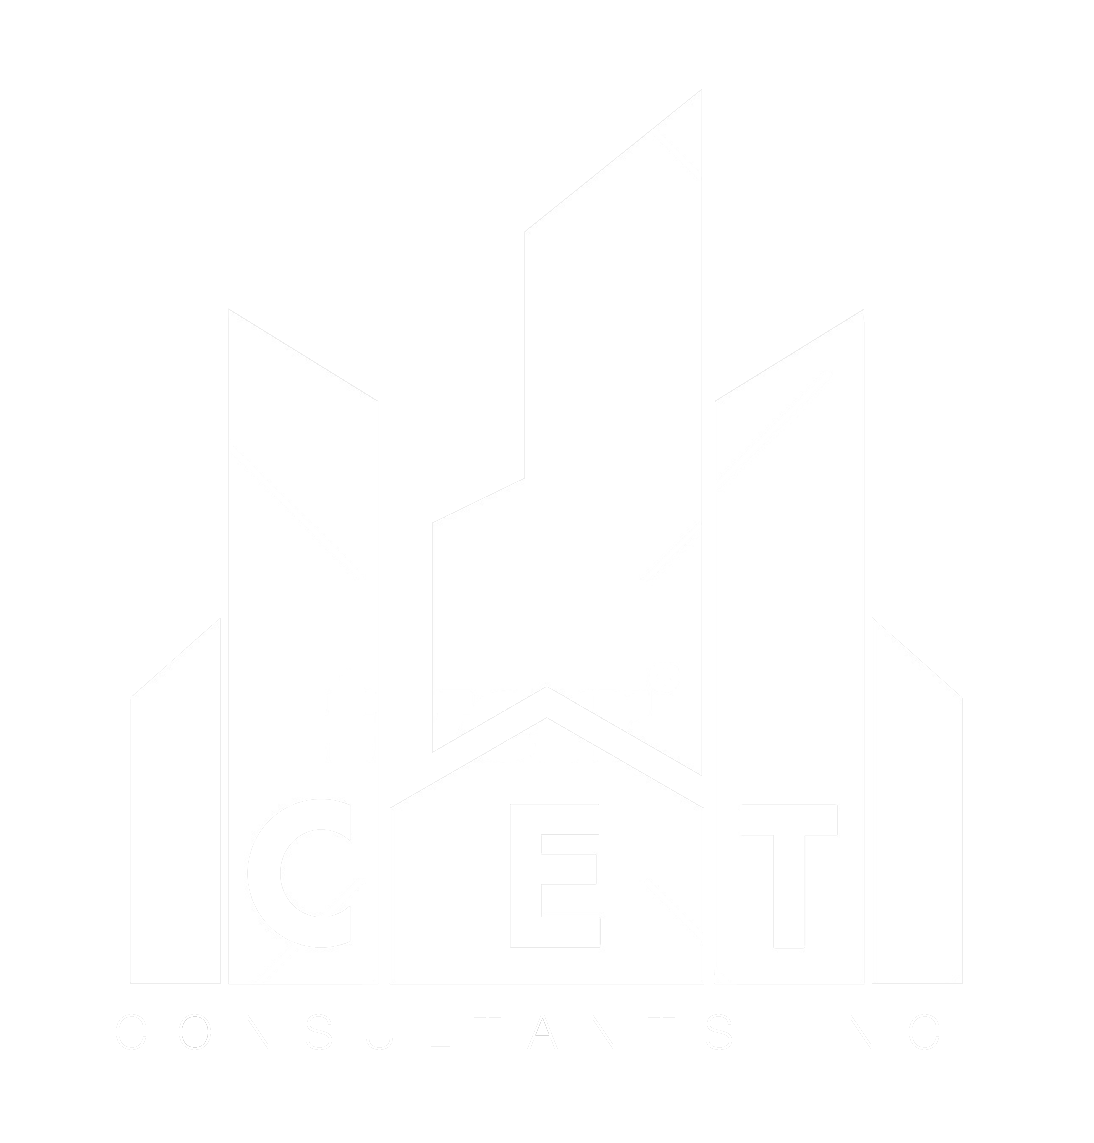 CET Consultants Inc.